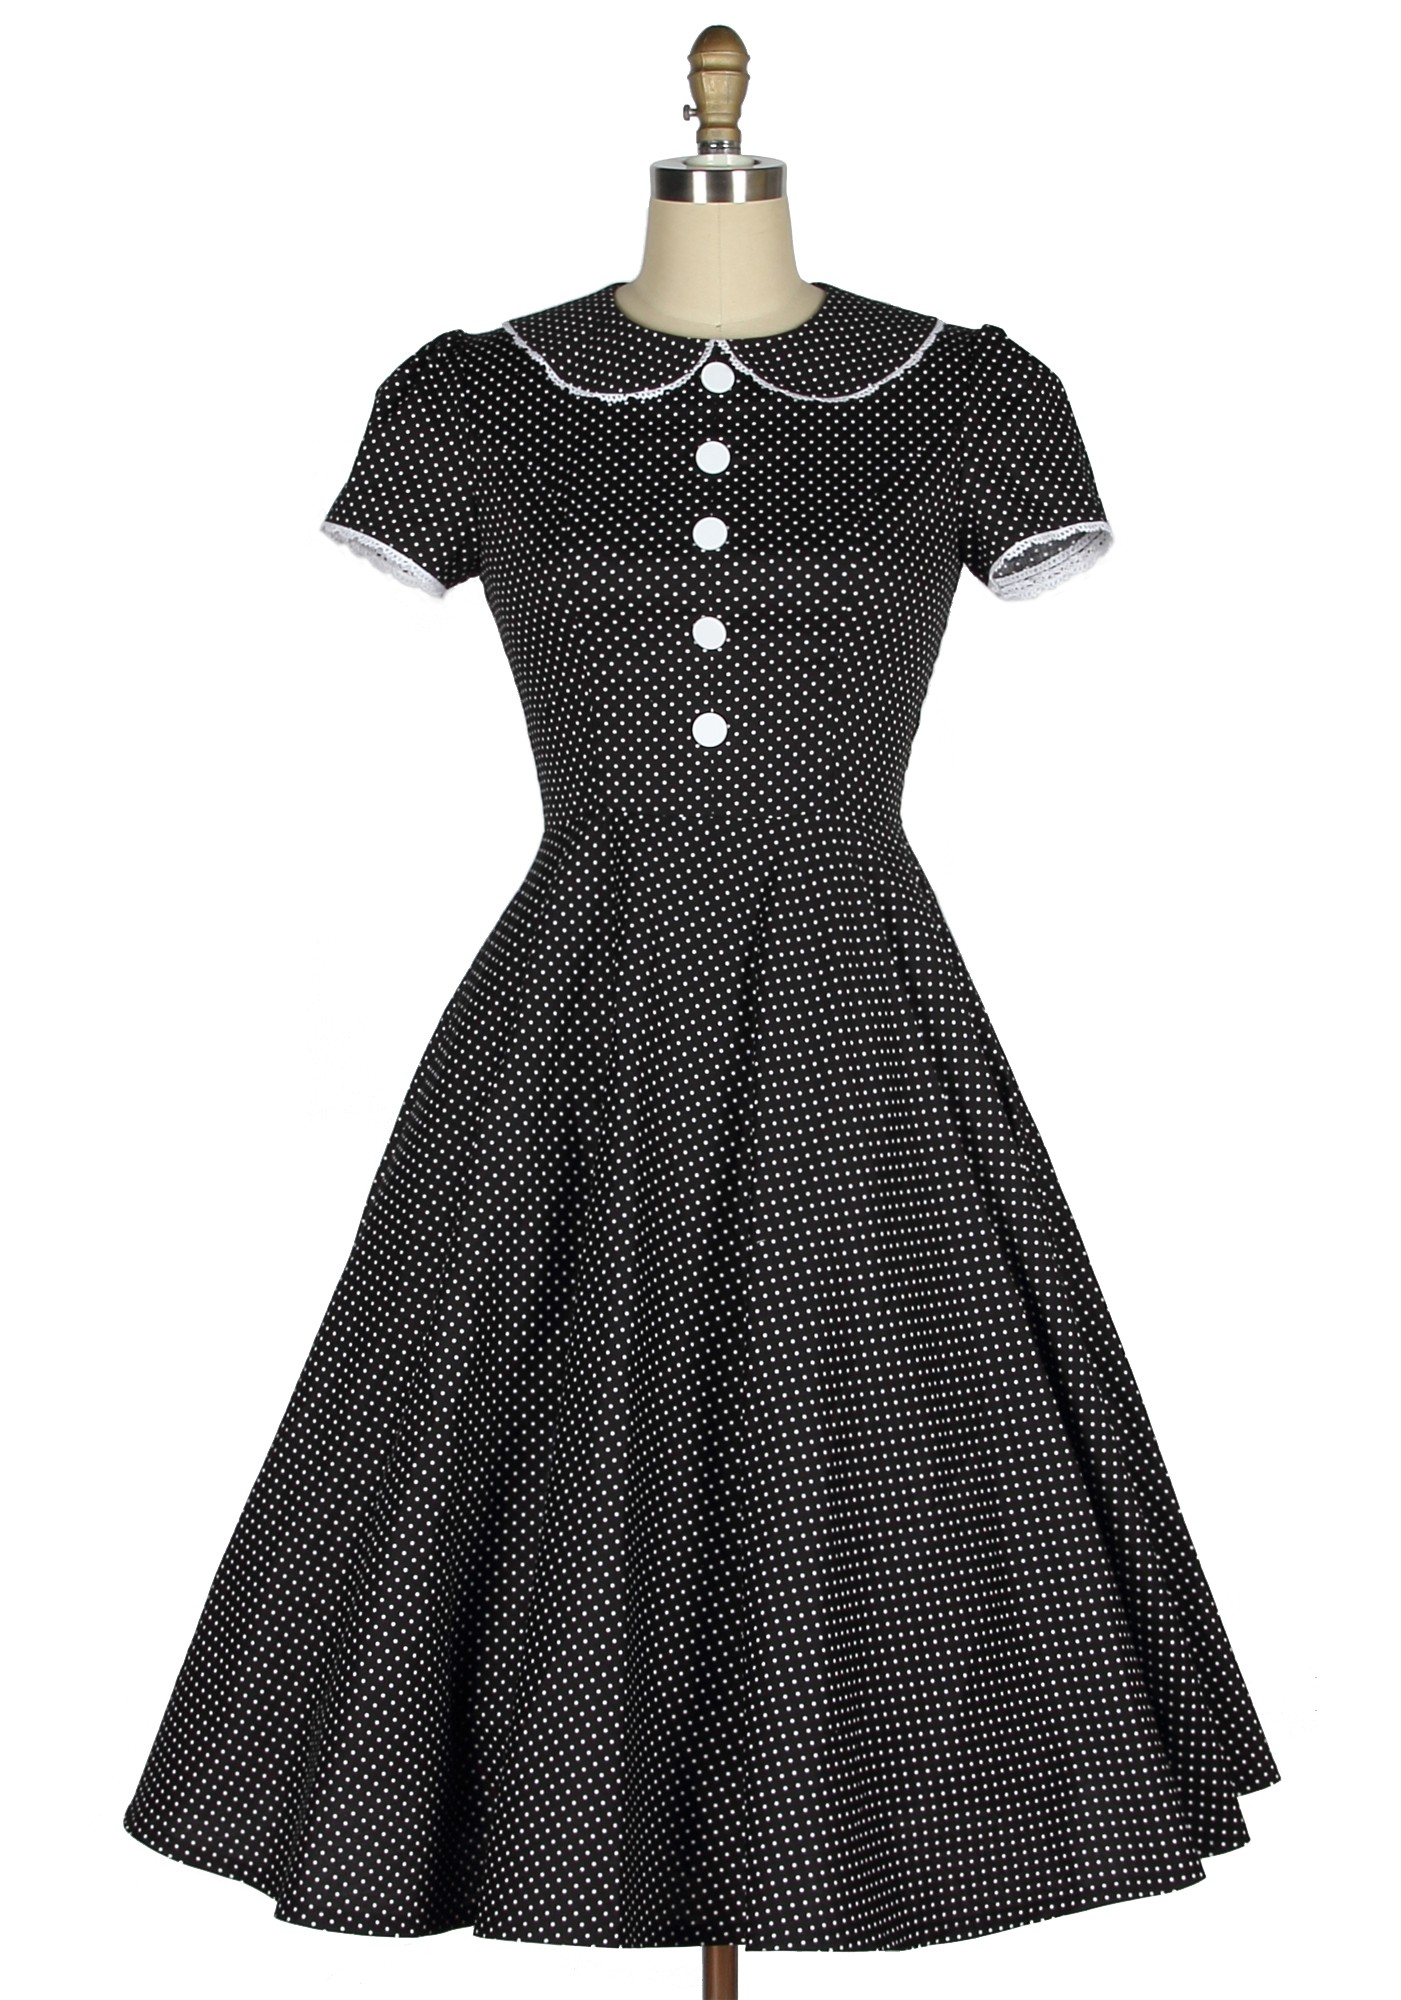 Old Soul Darling Polka Dots 40s Housewife Dress | ReoRia